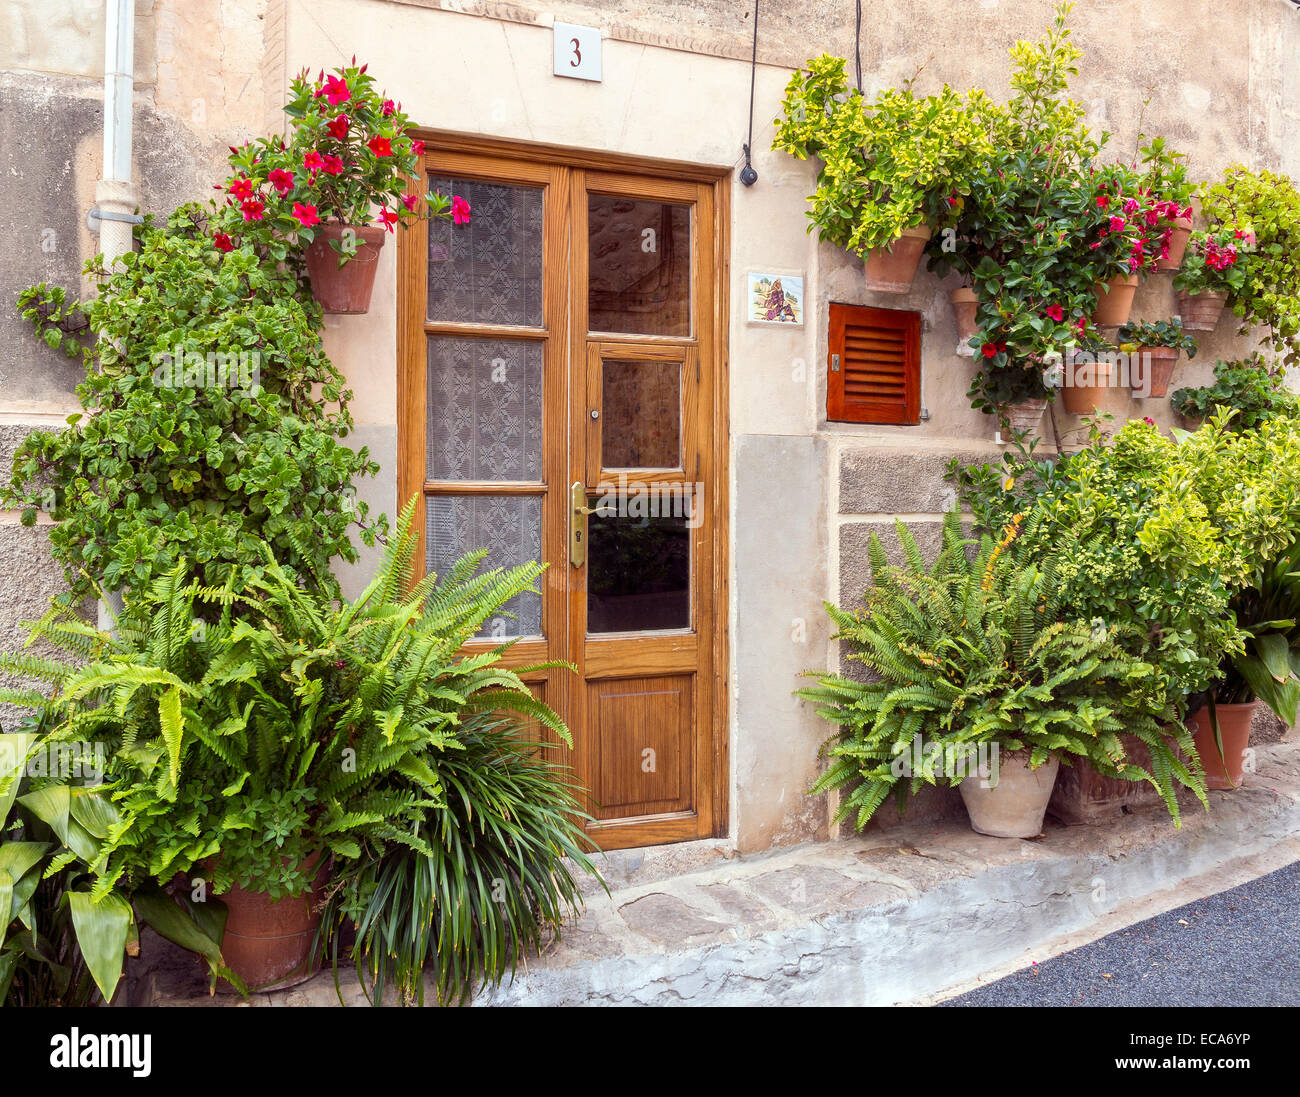 Entrance, surrounded by flowers and potted plants, Valldemossa, Majorca, Balearic Islands, Spain - Stock Image